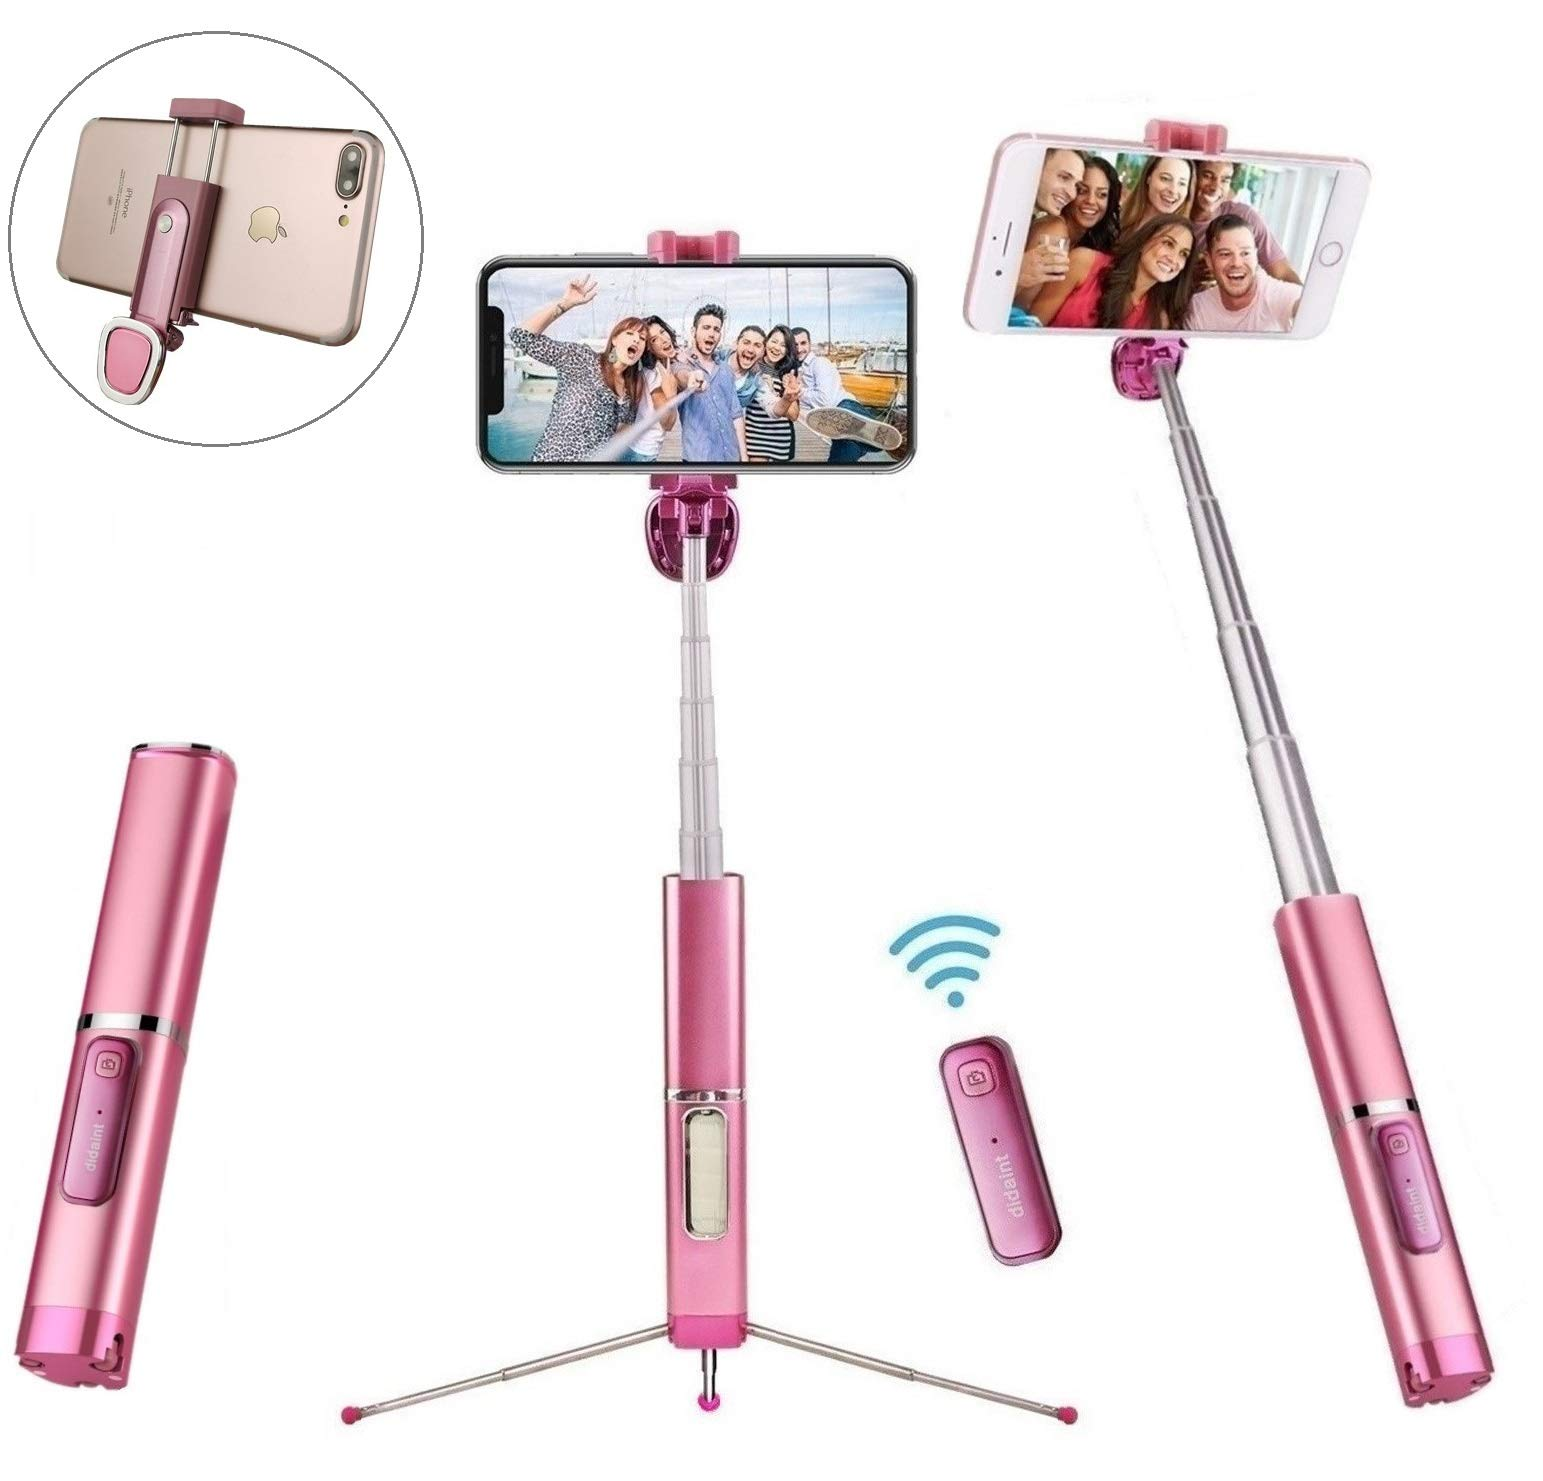 Selfie Stick Bluetooth, Mini Extendable 3 in 1 Aluminum Selfie Stick Tripod with Detachable Wireless Remote and Tripod Stand, for iPhone 11 Pro/XS Max/XR/XS/X/8/7 Plus, Galaxy and Smart Phone (Pink)